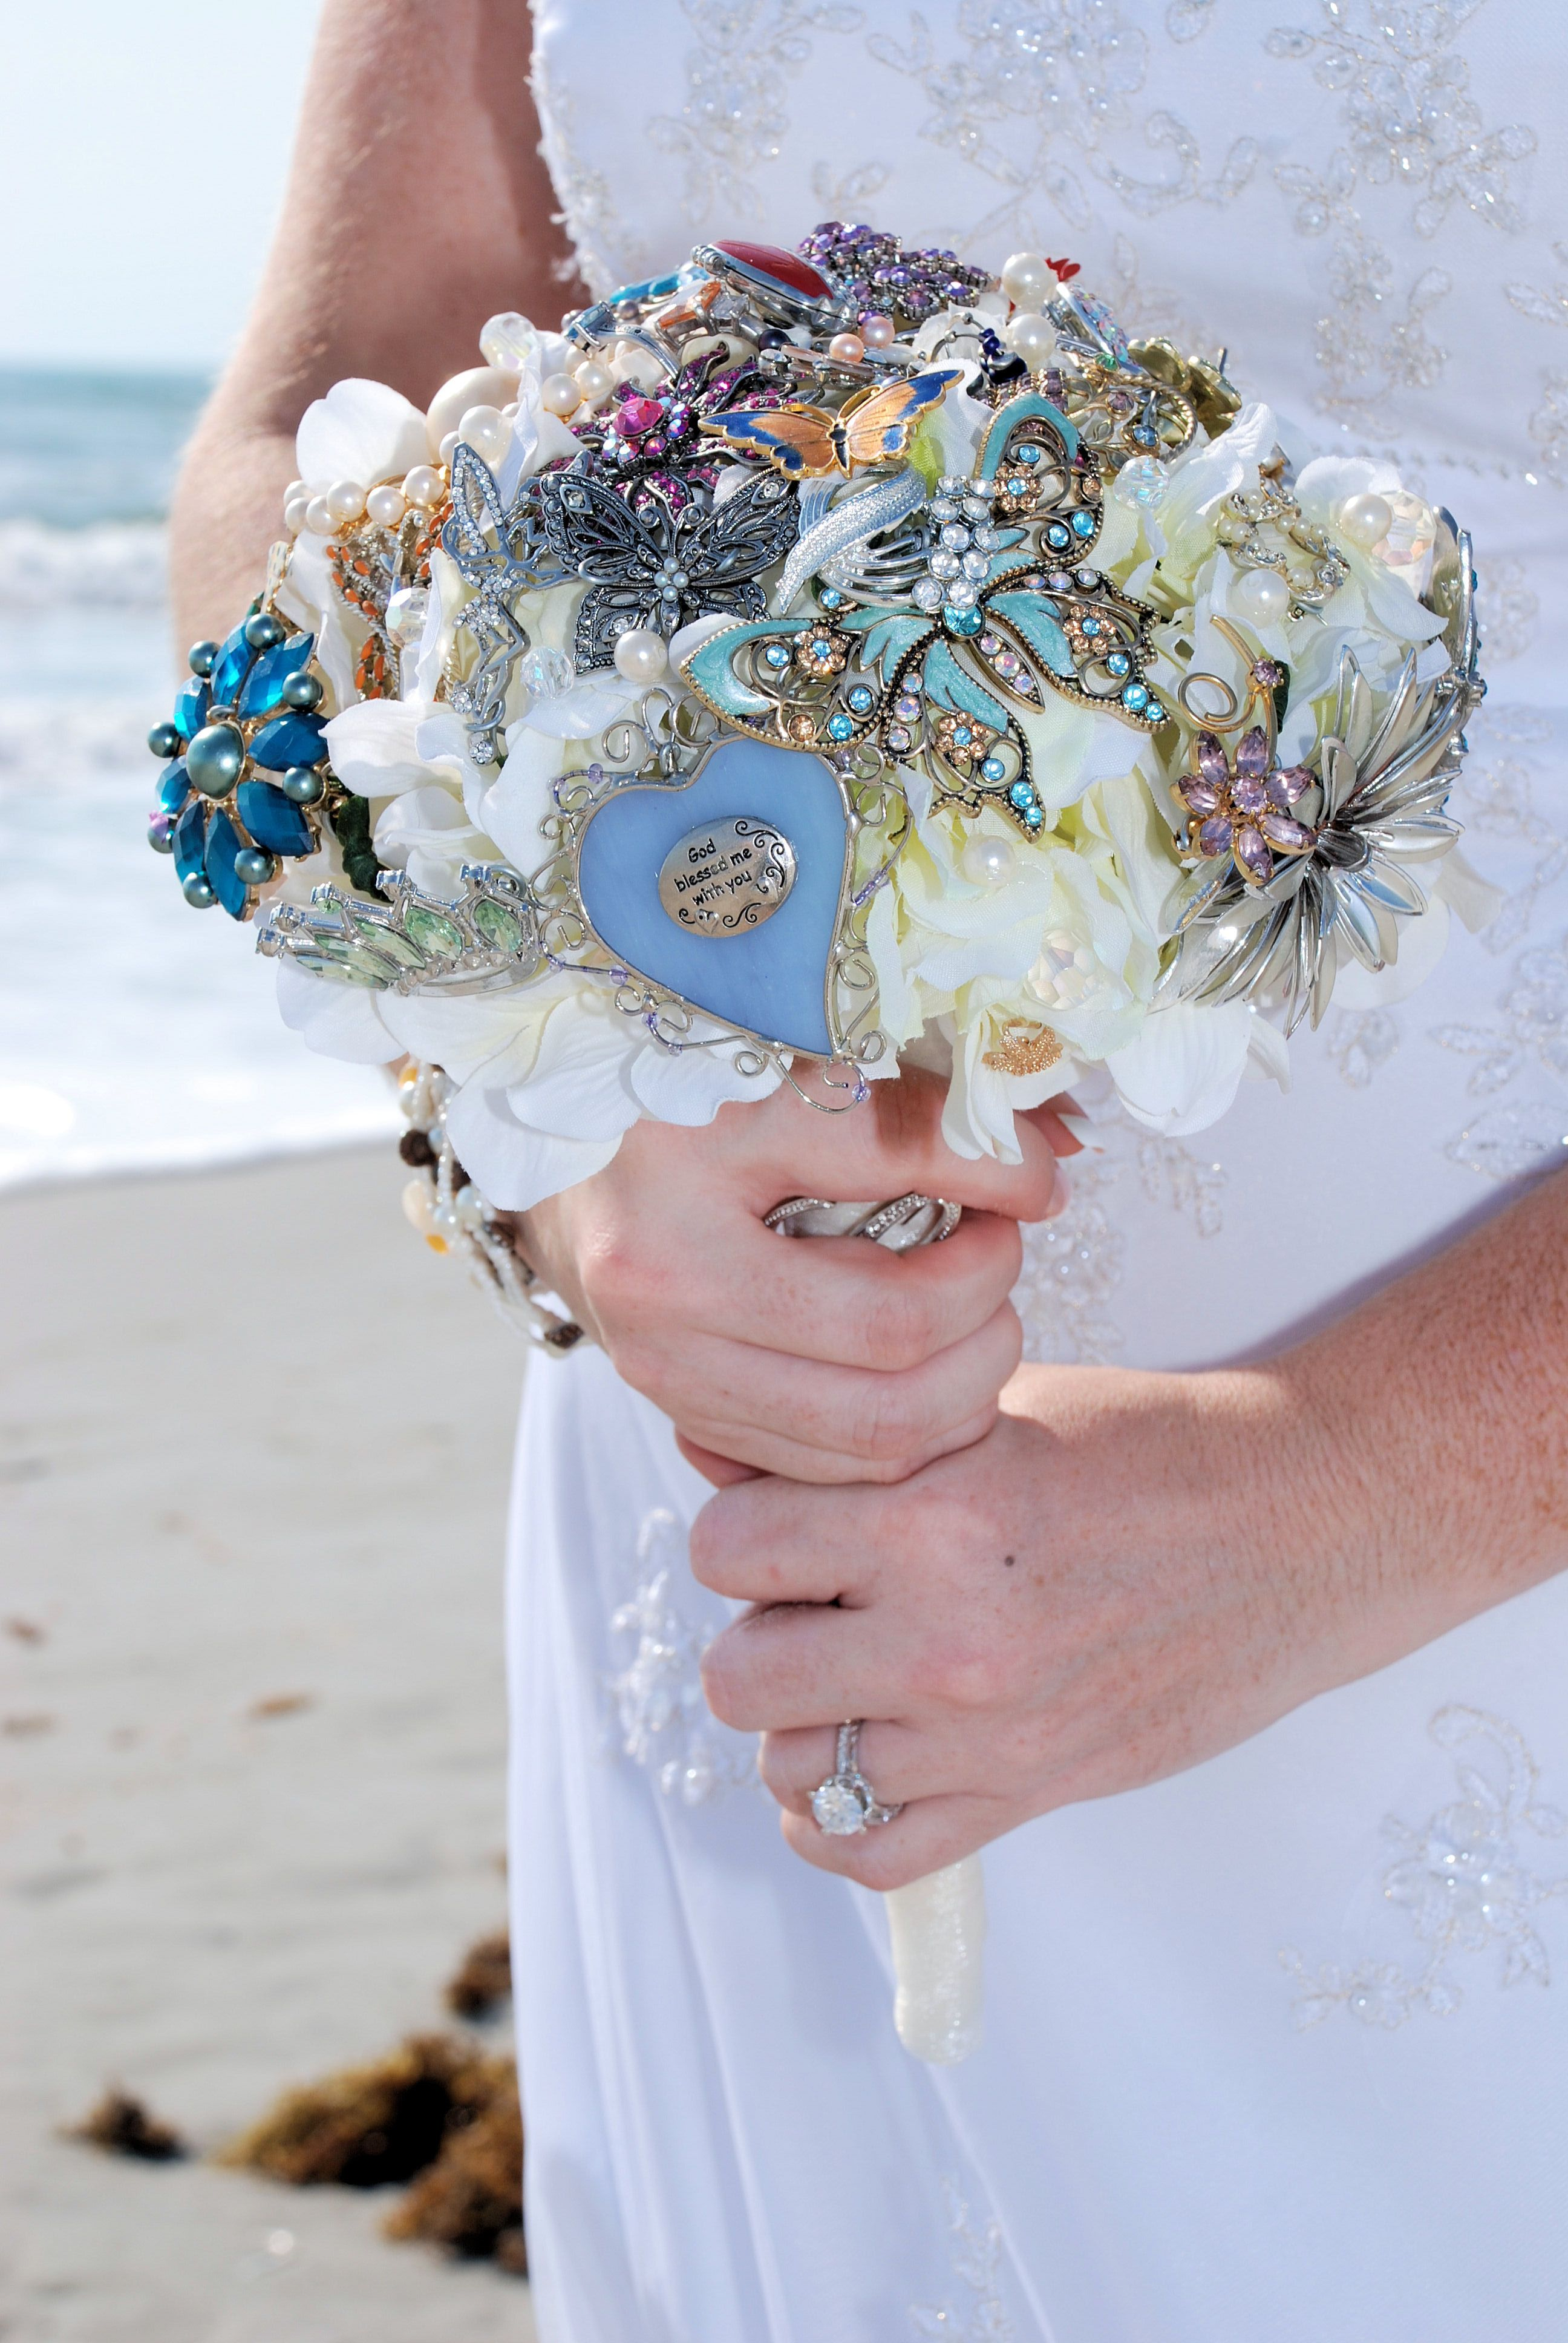 Brooch bouquet made by one of our Sept. 2012 brides